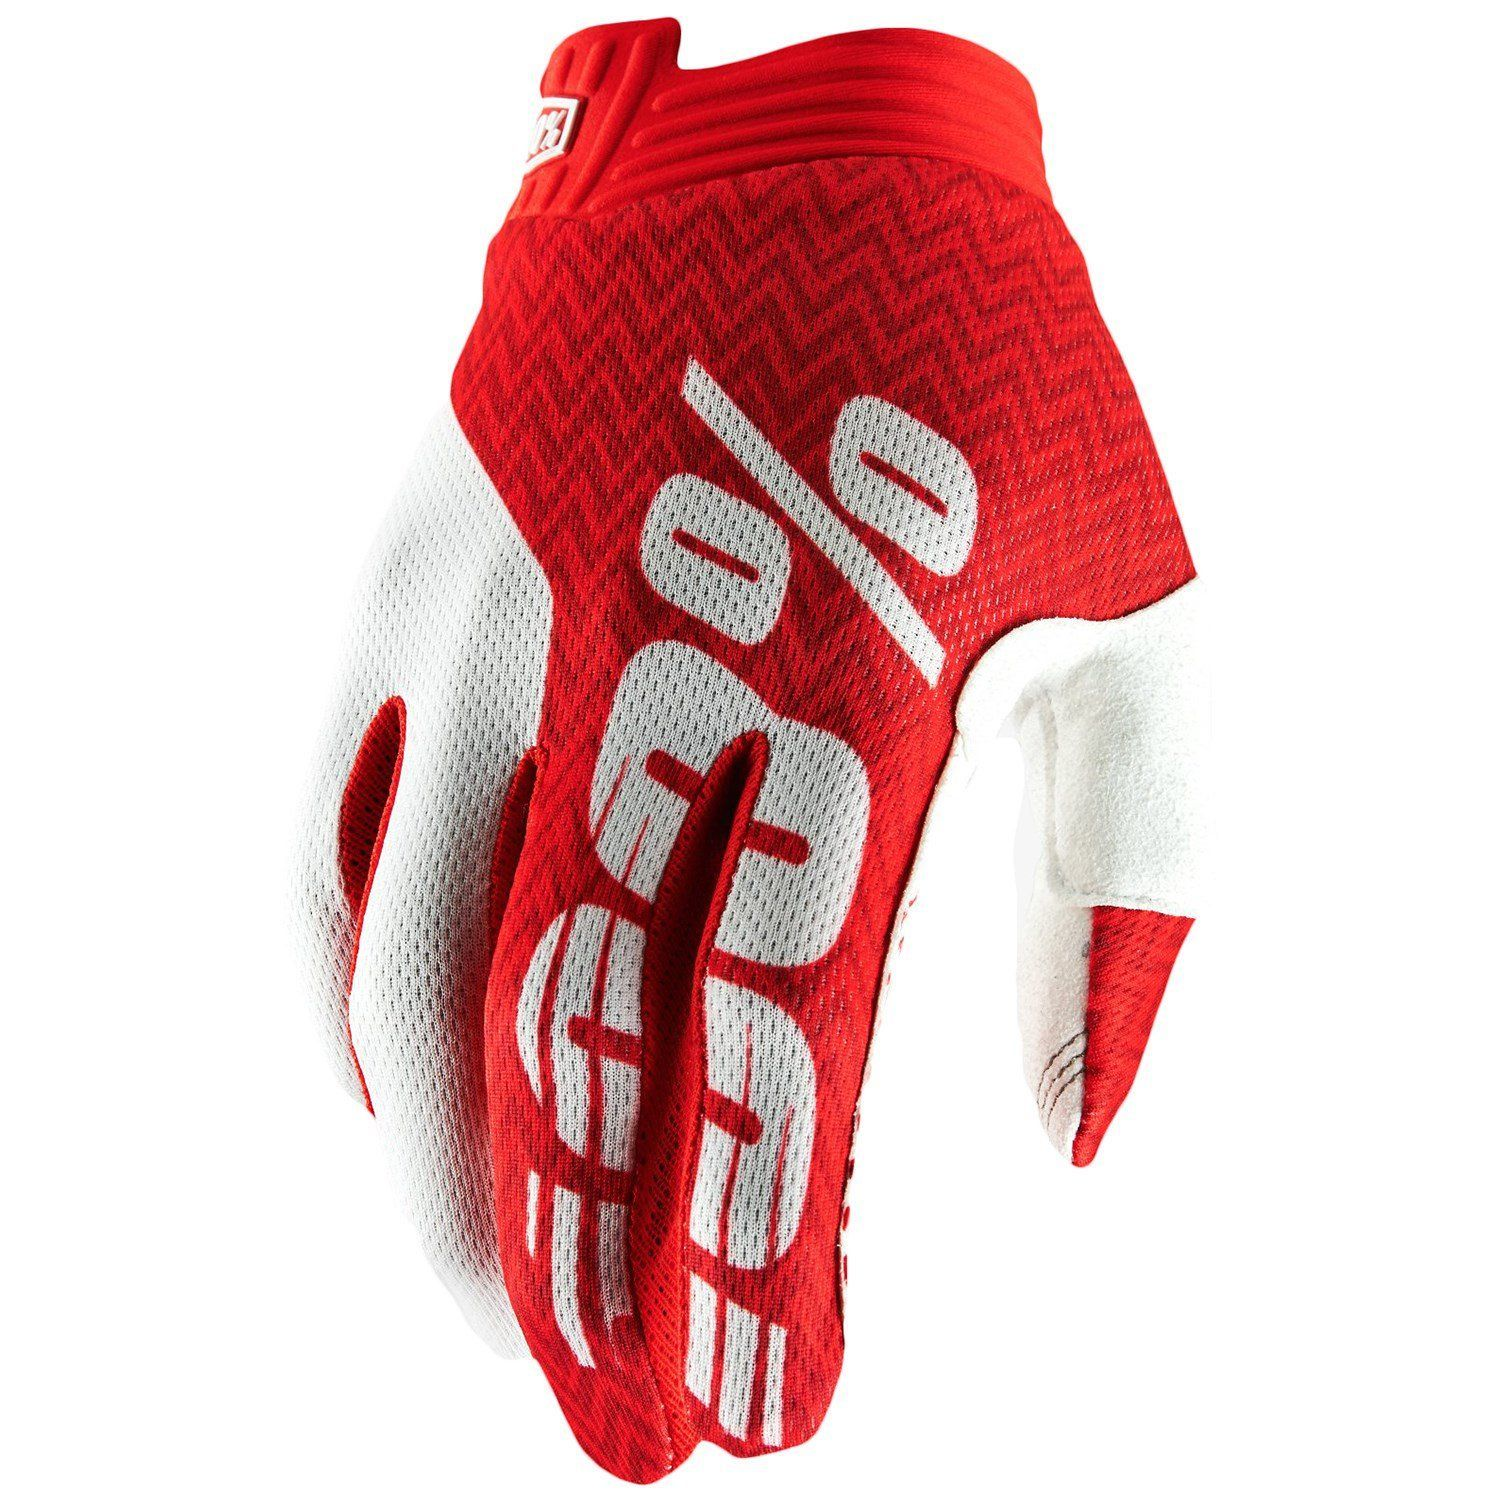 100 Itrack Bike Gloves Bike Gloves Itrack In 2020 Bike Gloves Red Leather Tailored Clothes